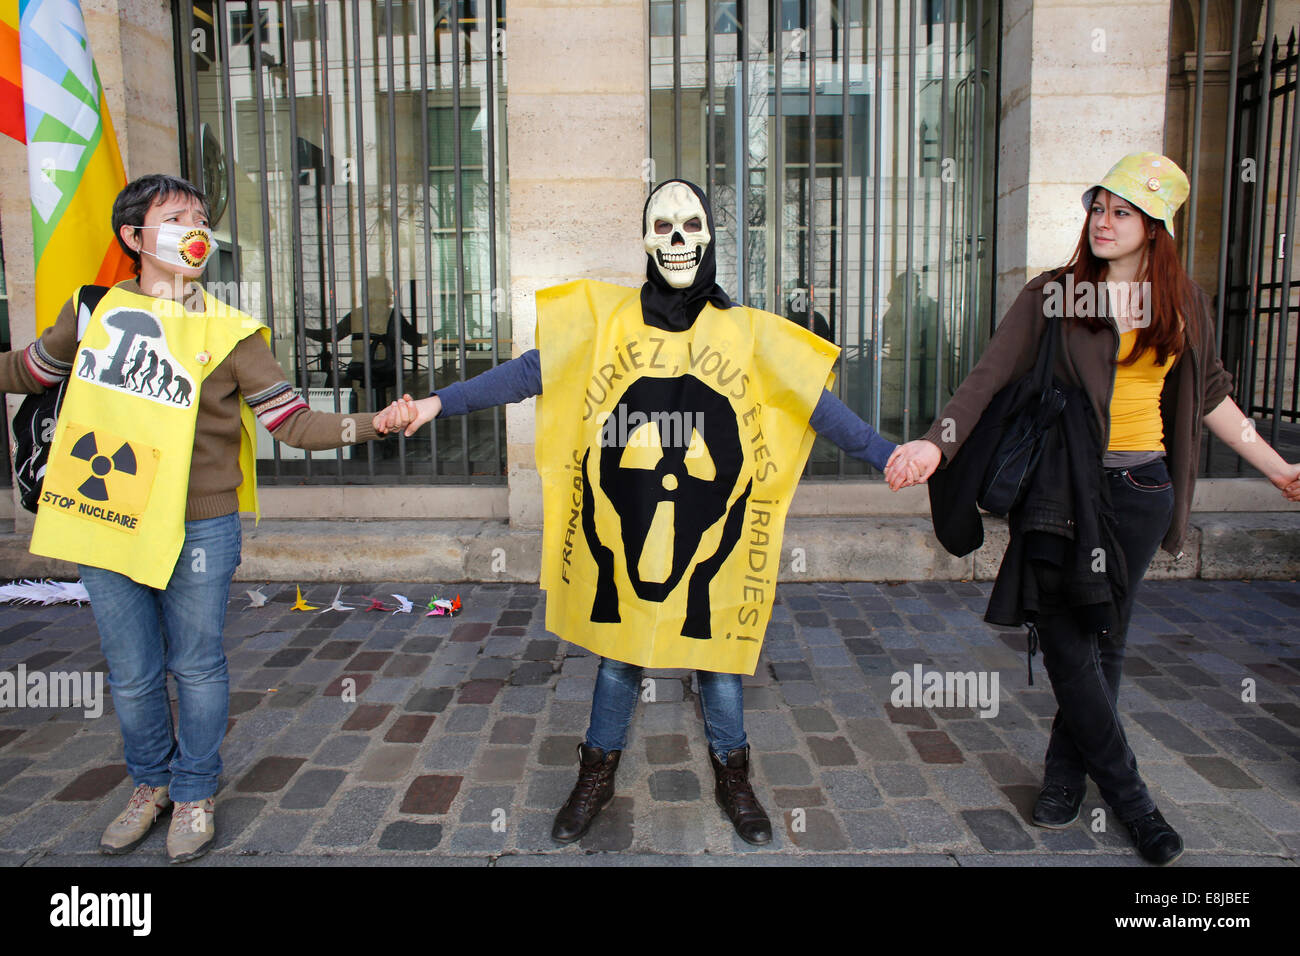 Demonstration against nuclear energy - Stock Image